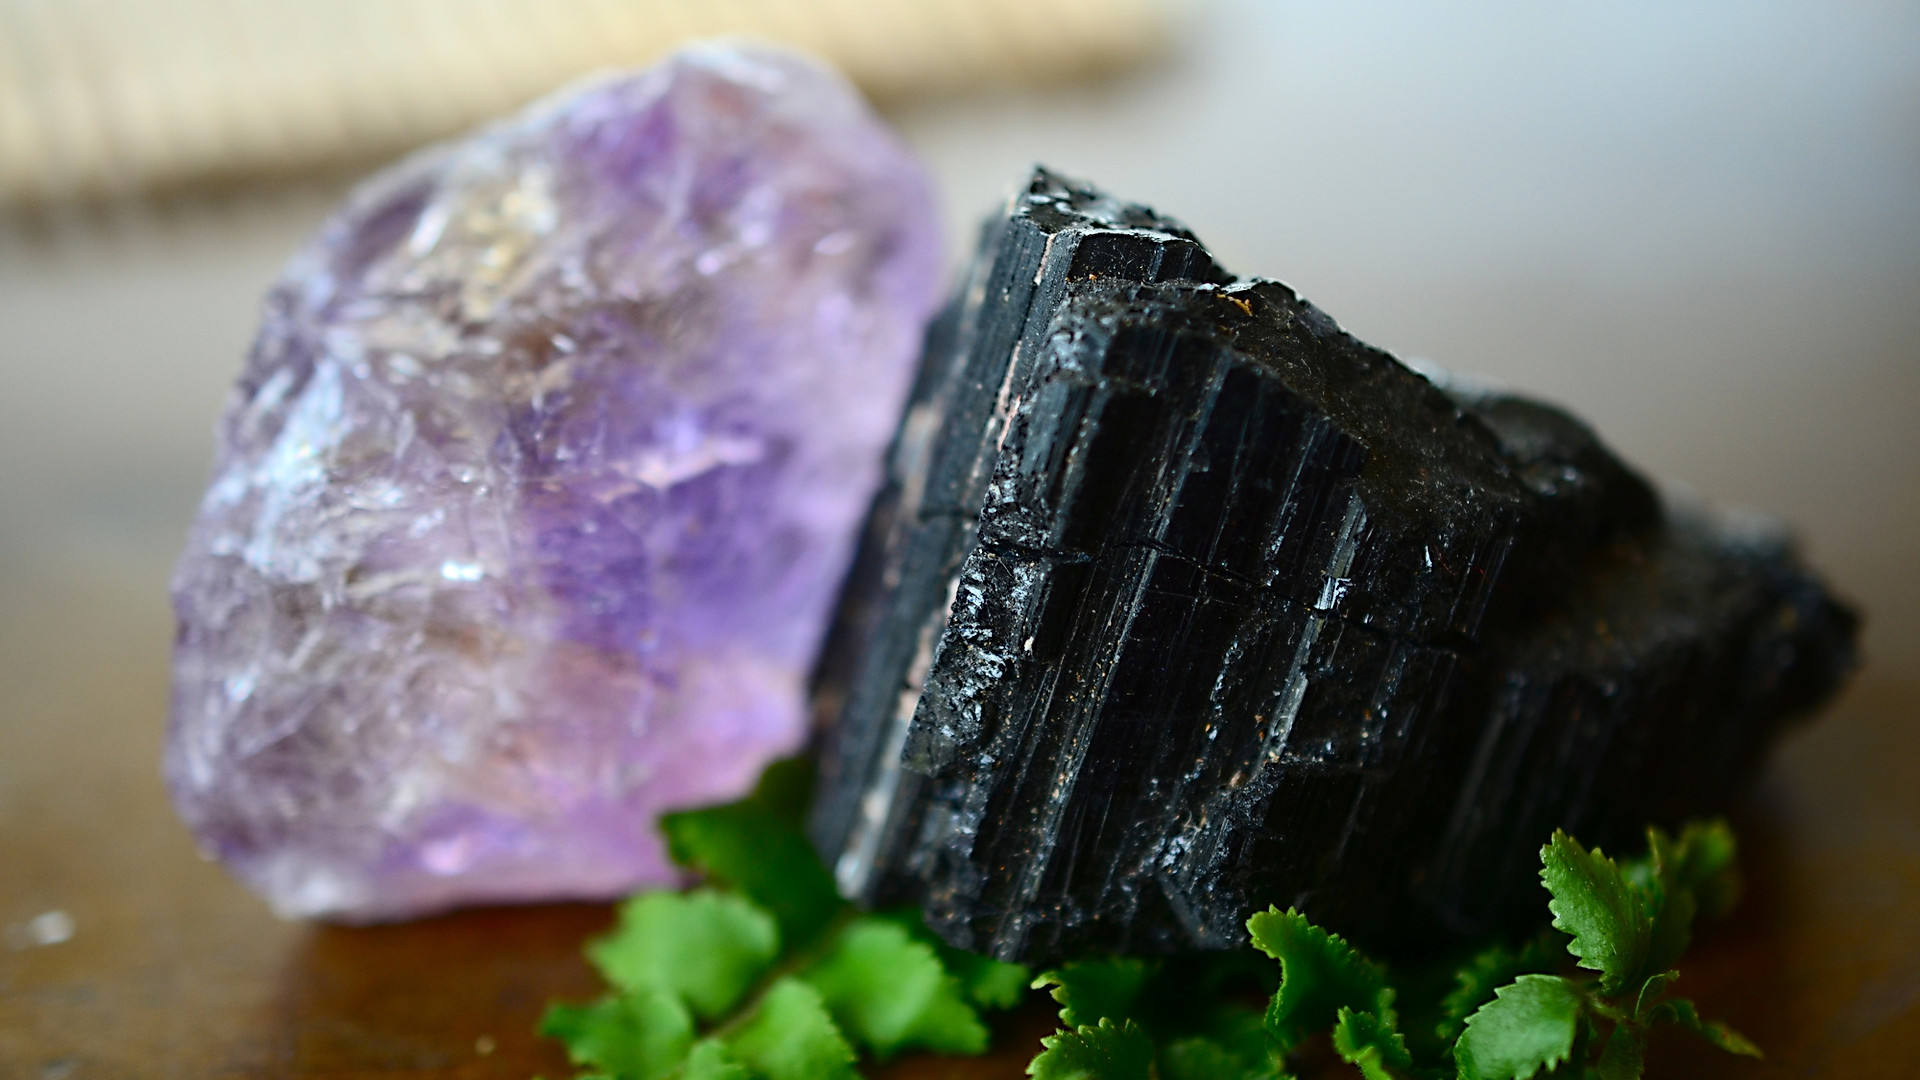 High Tech Amethyst And Tourmaline Used In the Richway BioMat